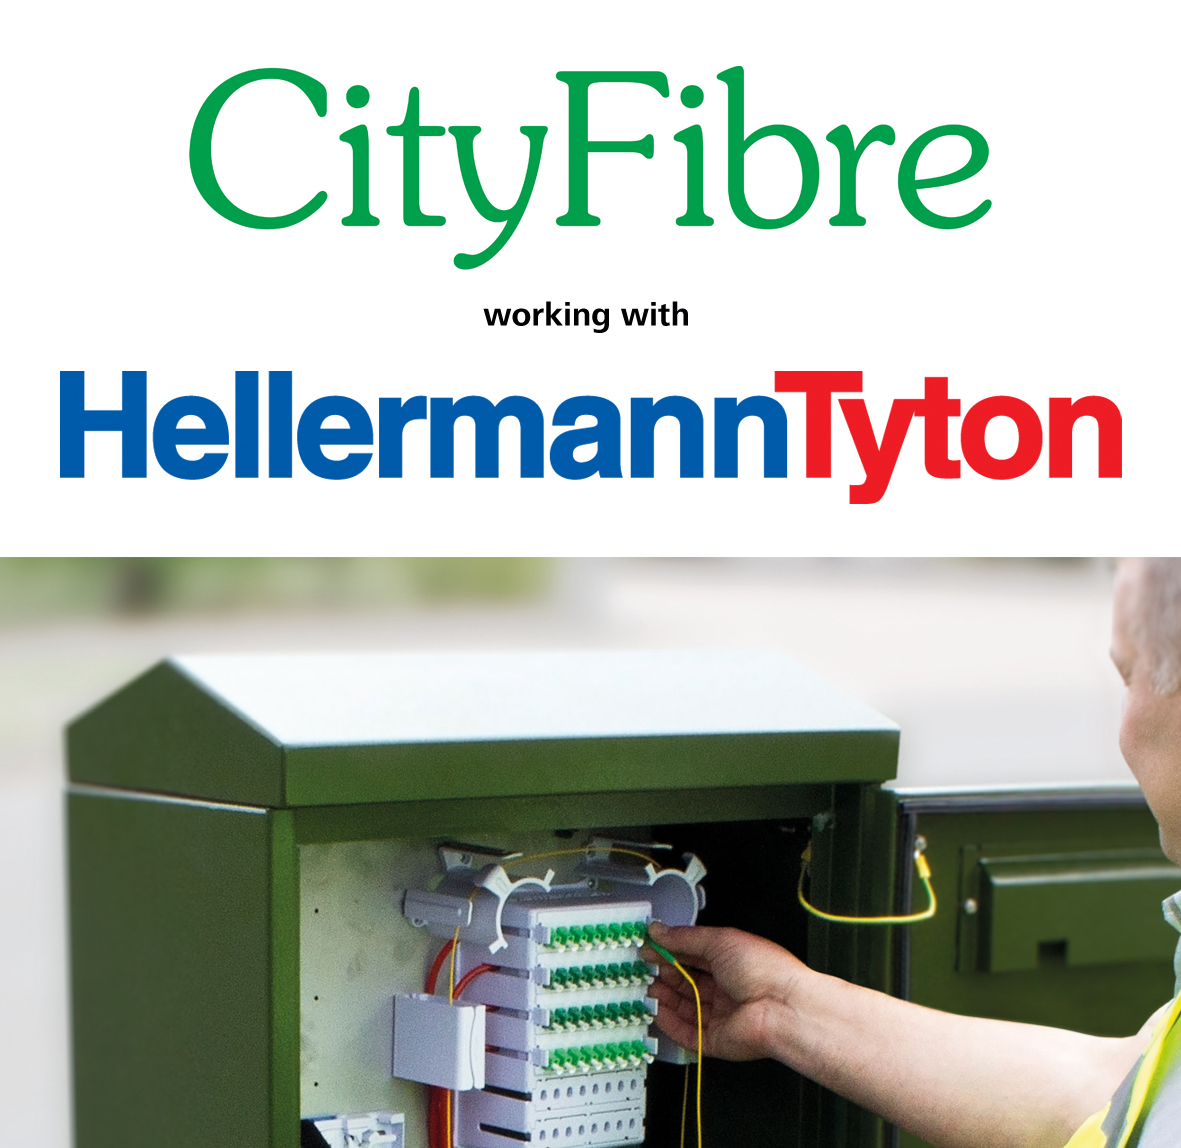 HellermannTyton Sign Supplier Agreement with CityFibre